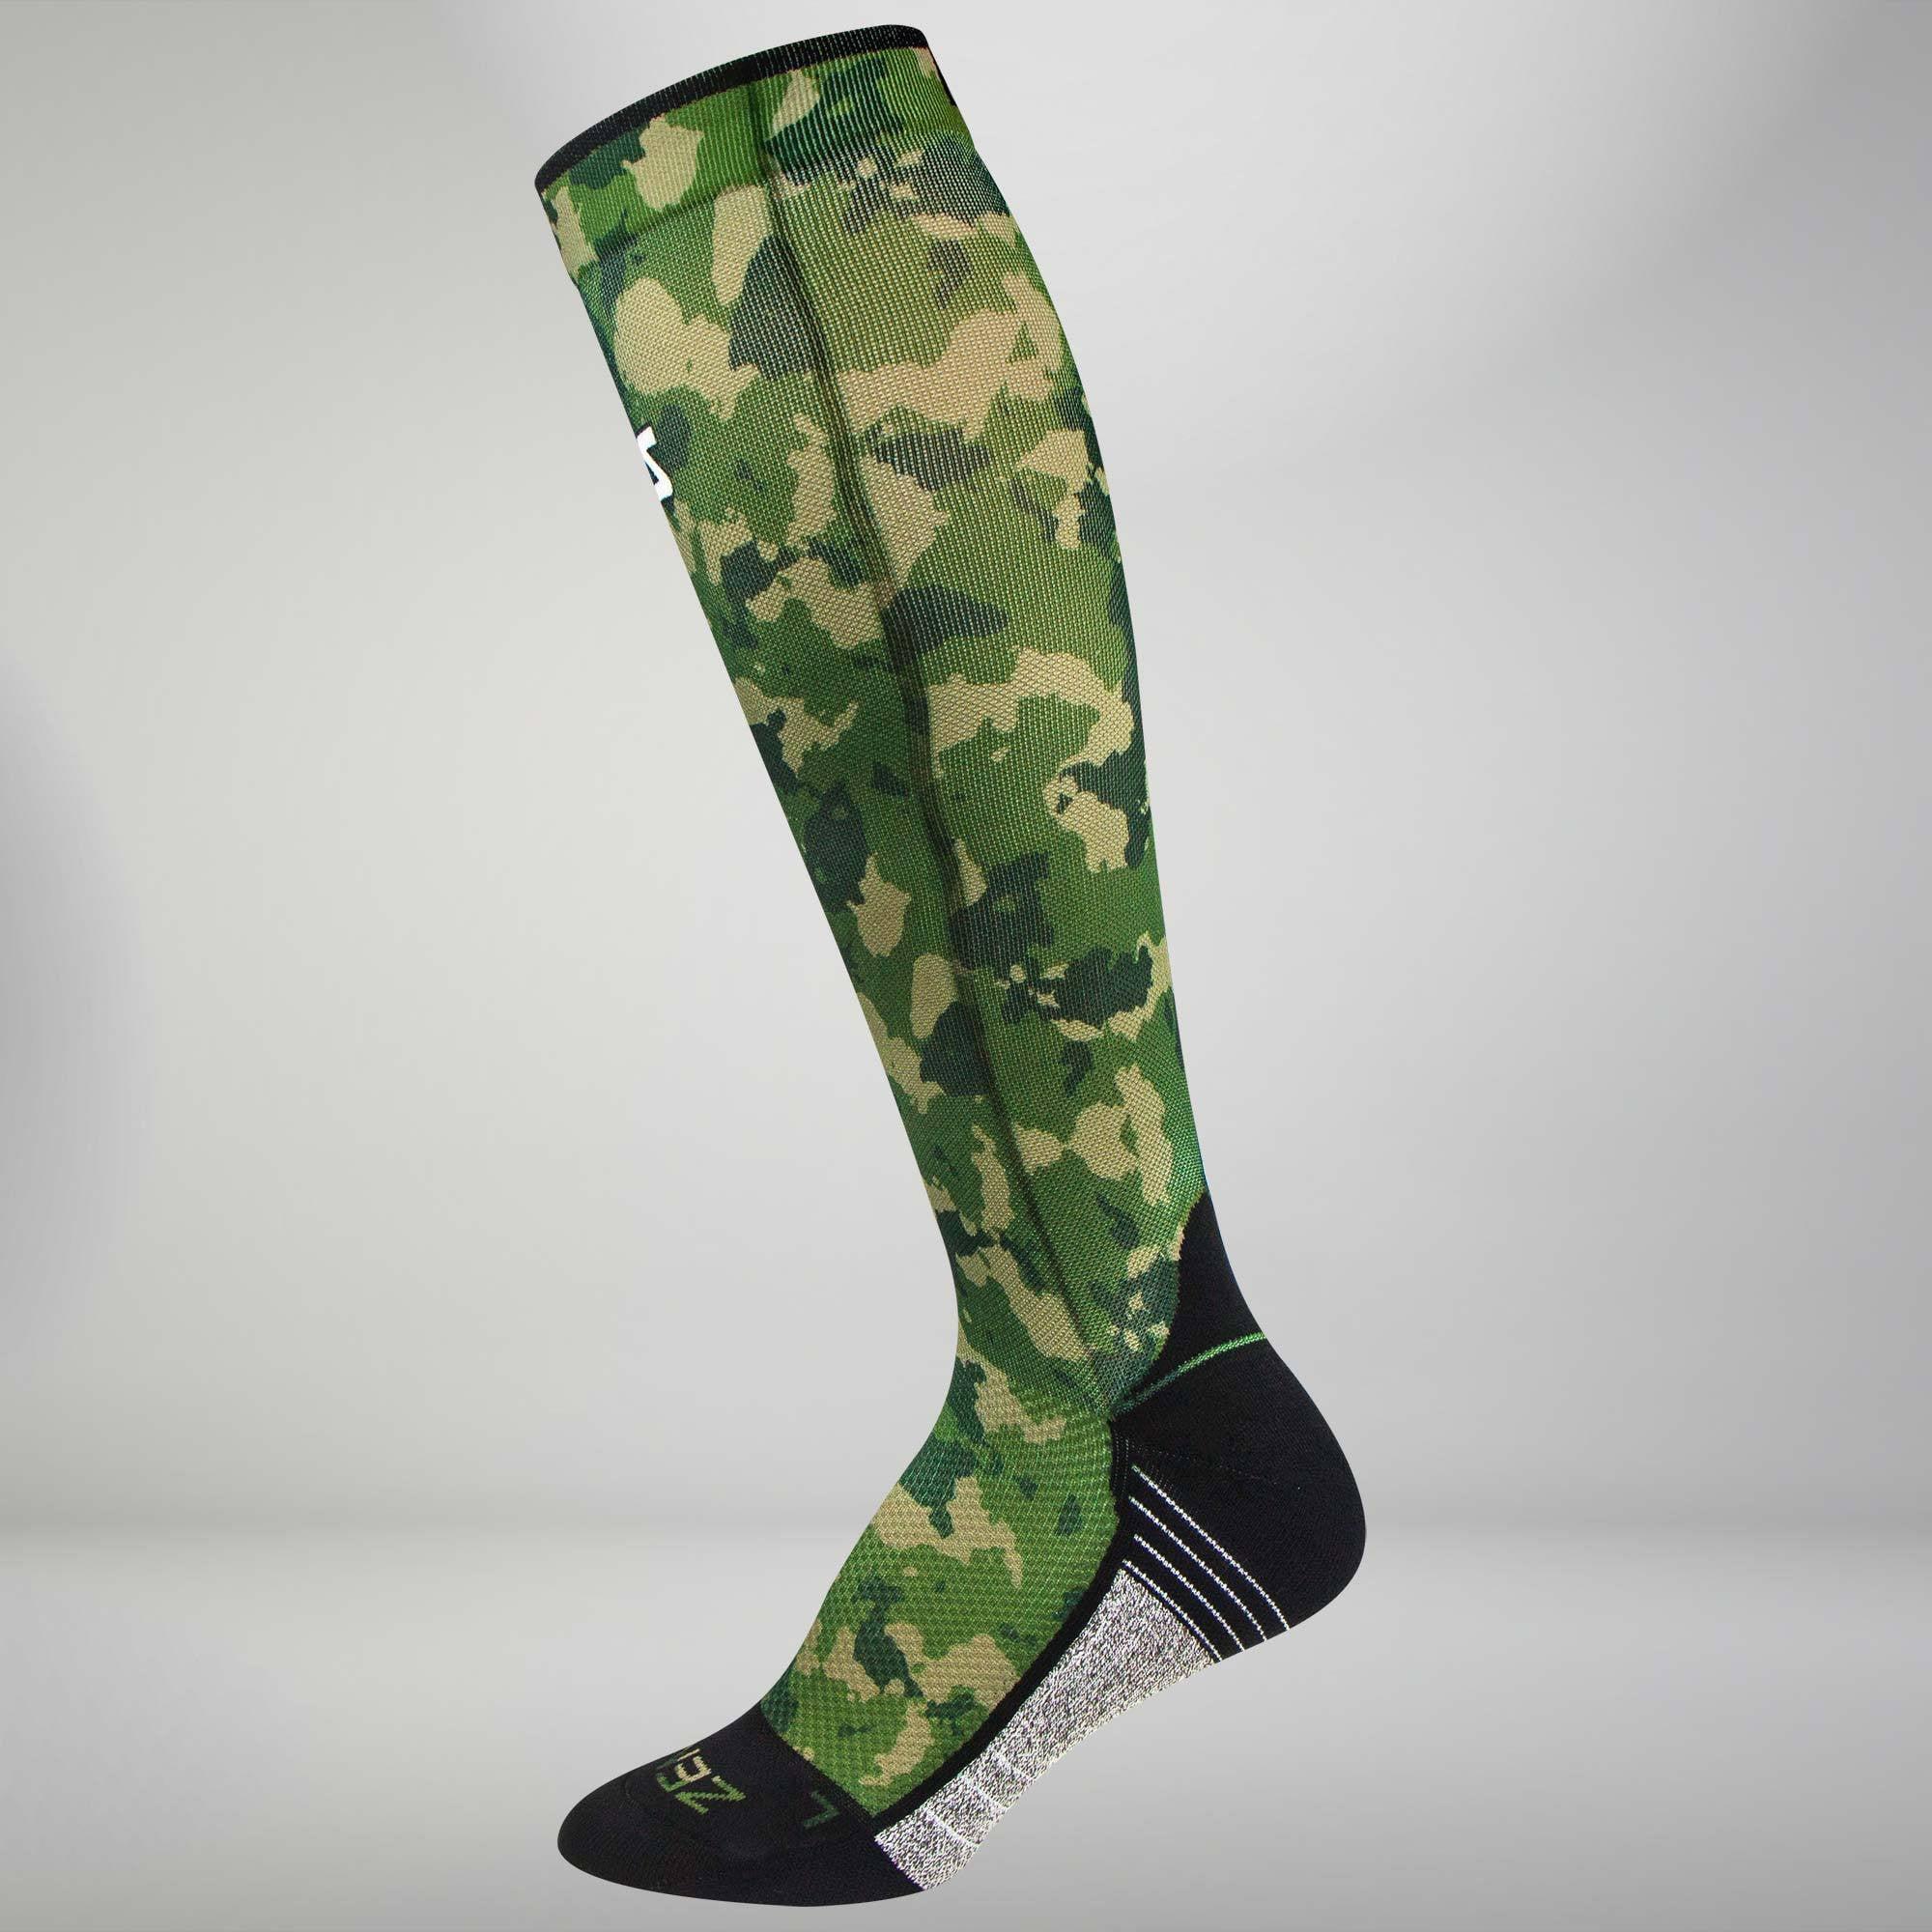 c0331c840a8 Army Green Camo Themed Running Socks